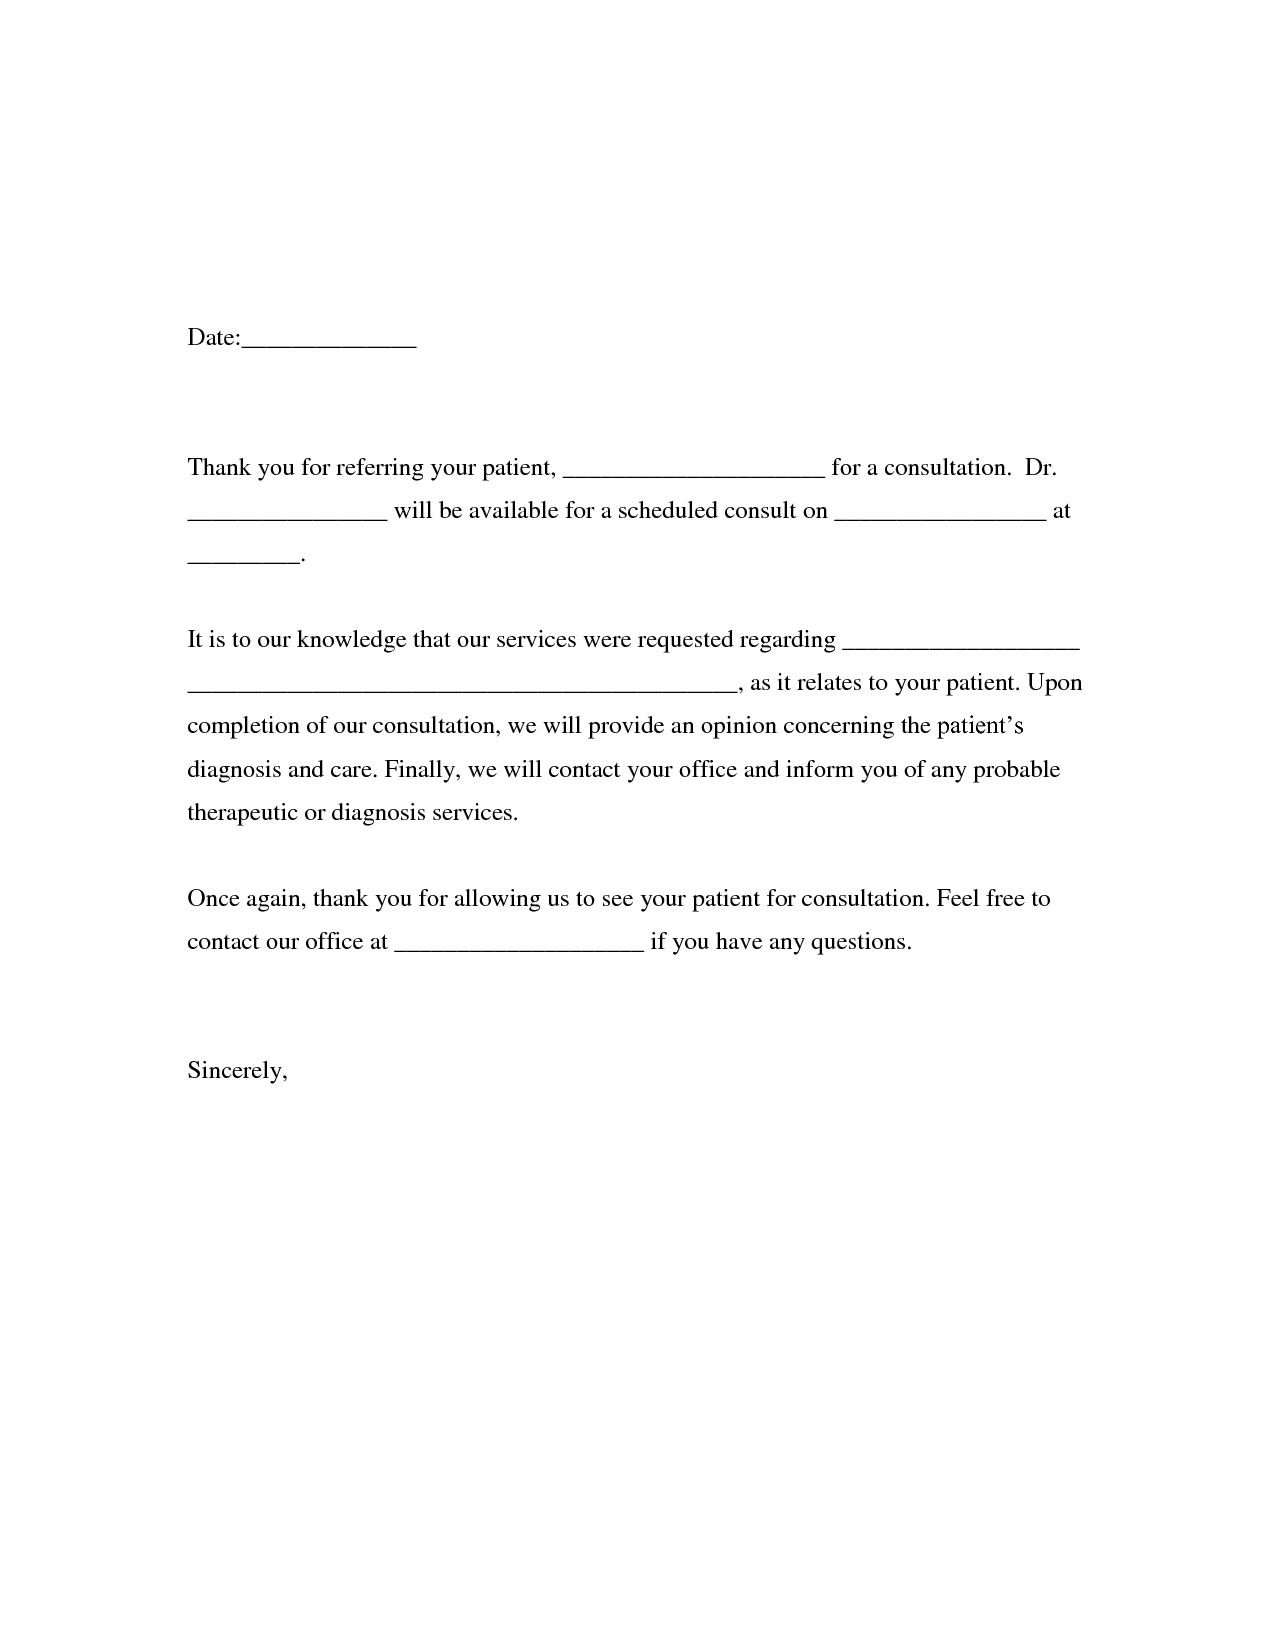 Thank You Letter For Patient Referral Images Letter Format